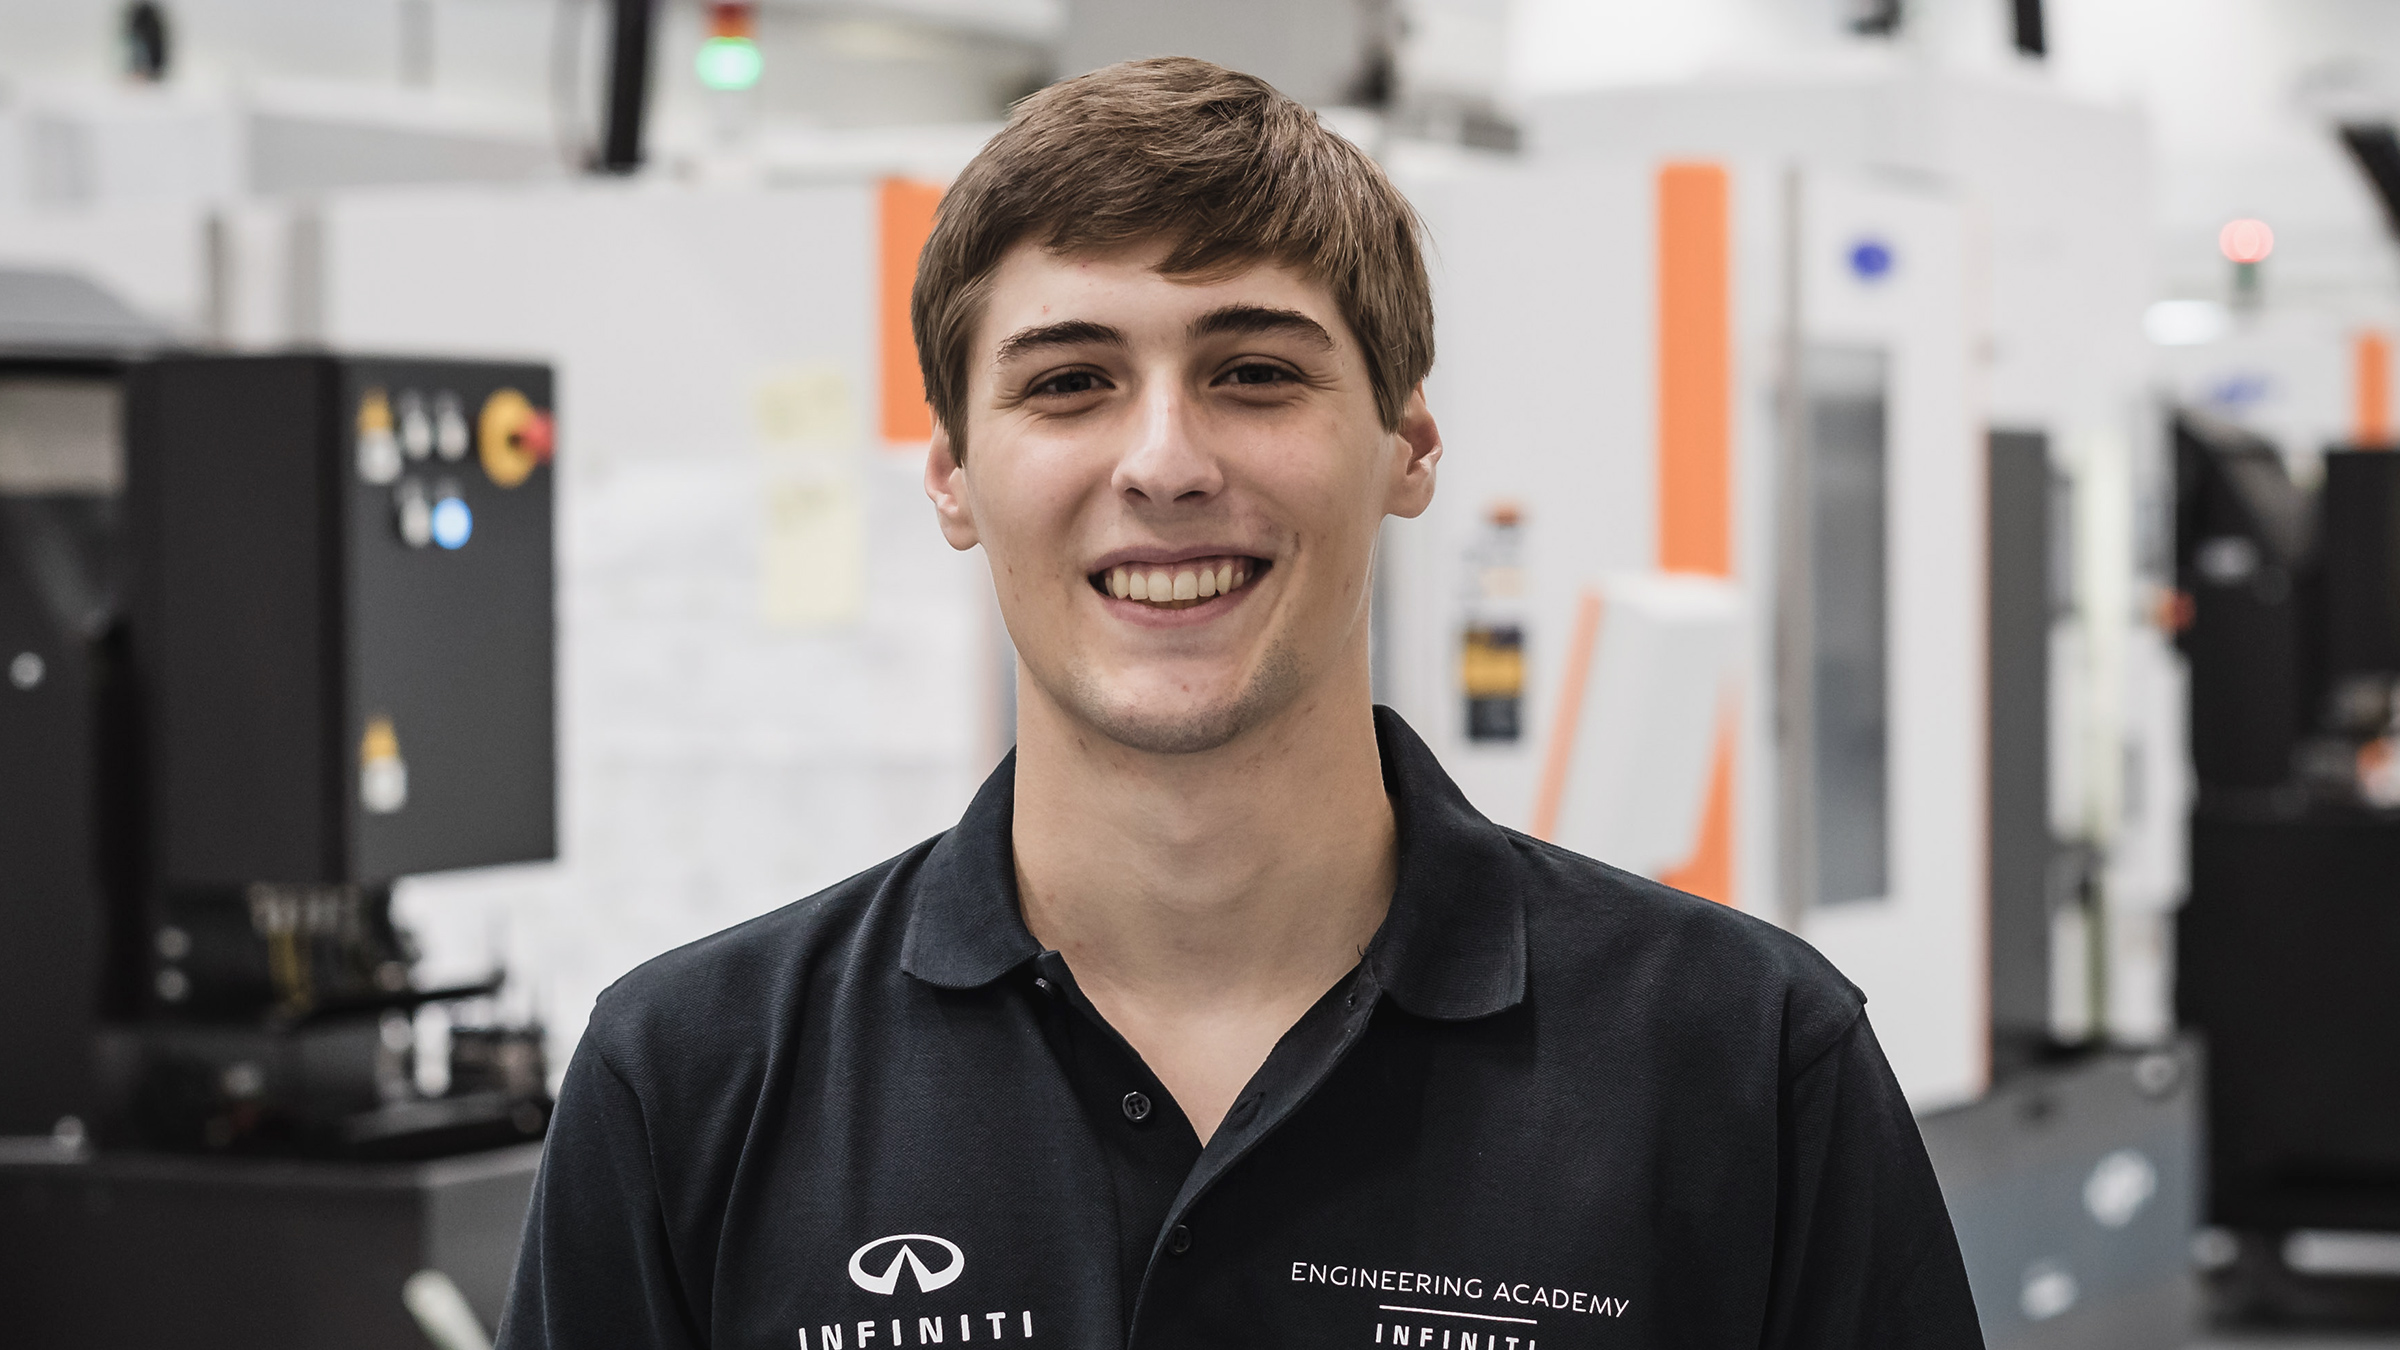 INFINITI Engineering Academy 2019 Engineer Patricio Barroso Profile